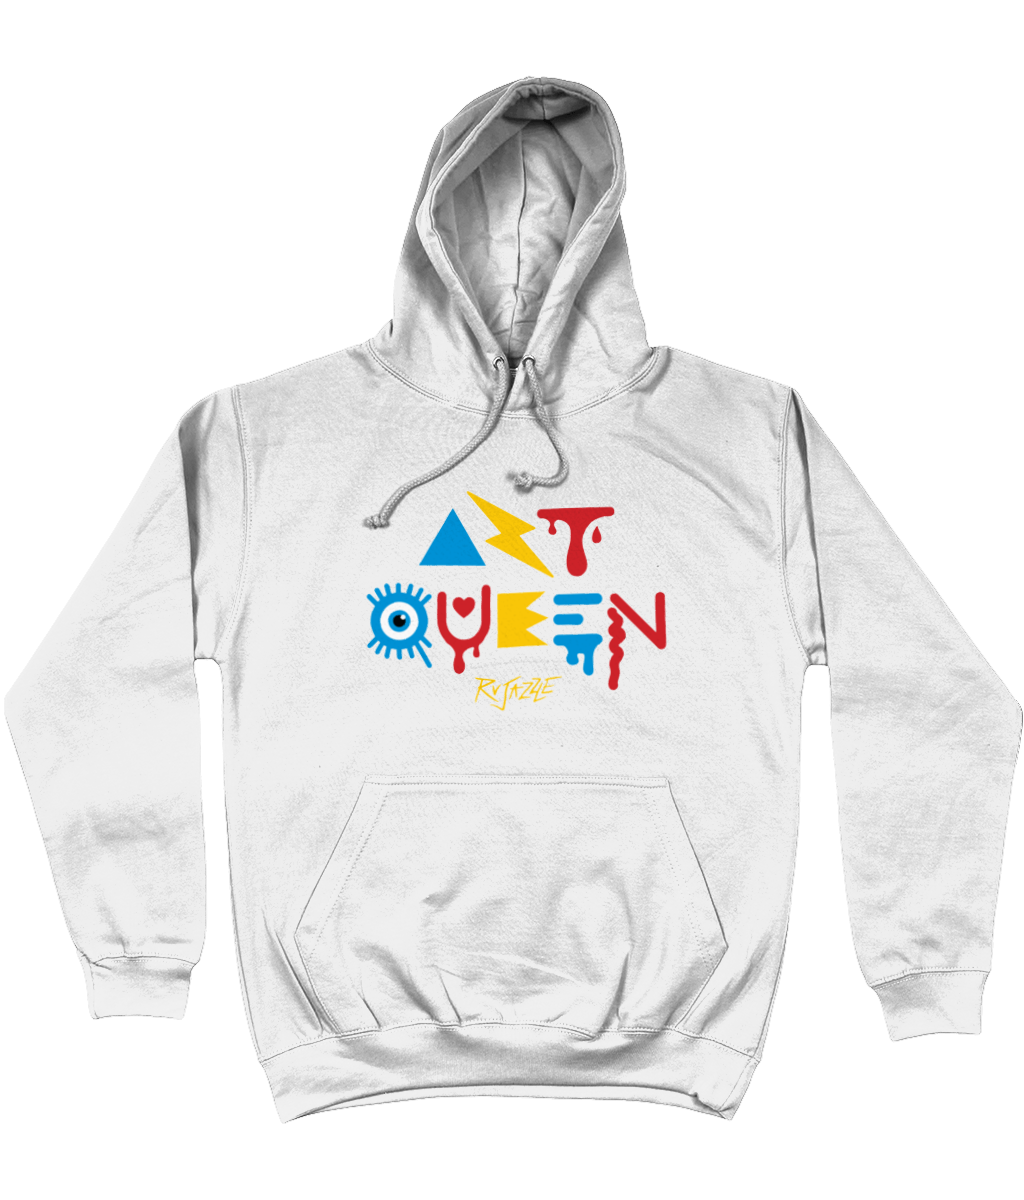 Rujazzle - Art Queen Hoodie - SNATCHED